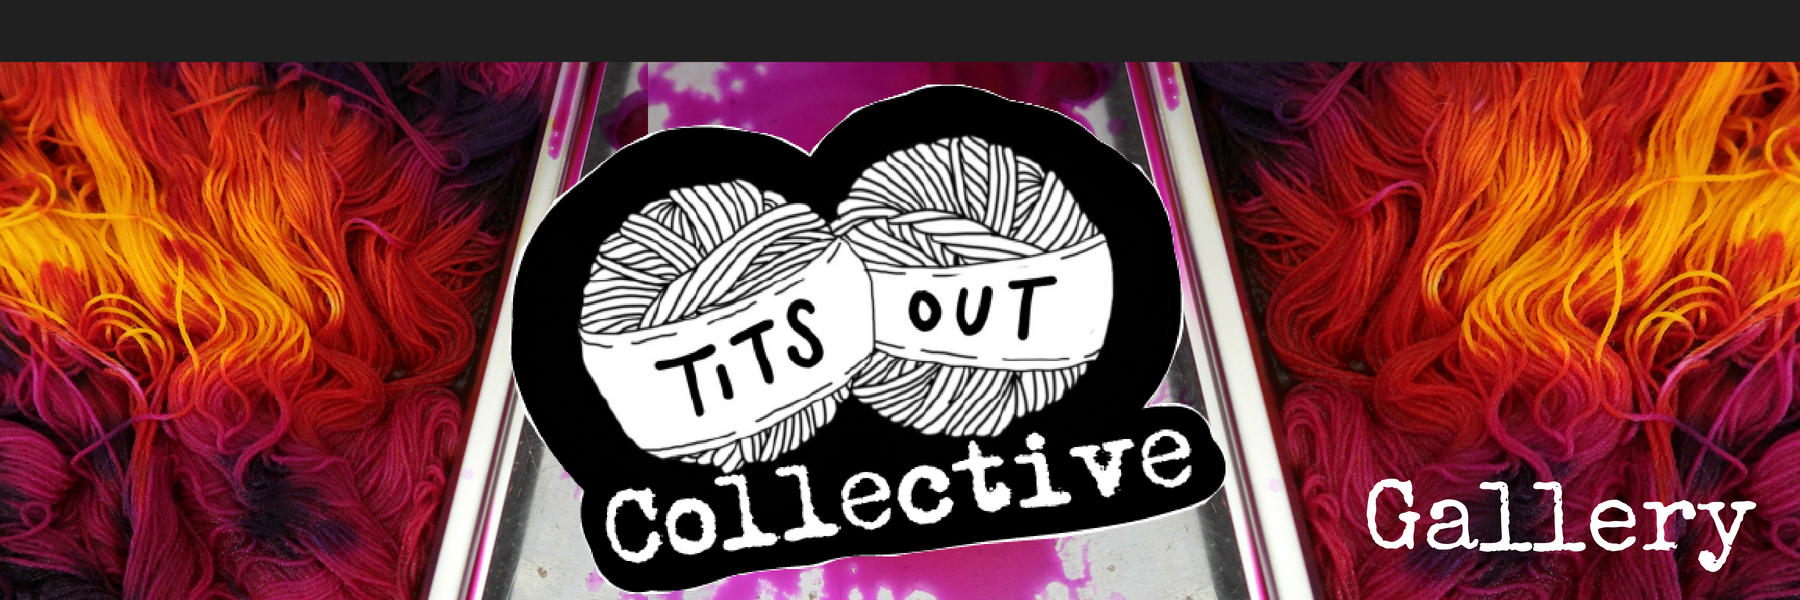 A logo of Tits Out Collective which has two hand drawn balls of wool has been edited onto a photograph of the yarn colourway being dyed in a stainless steel tray. The colours are yellow, orange and neon pink. To the bottom right is the word Gallery.